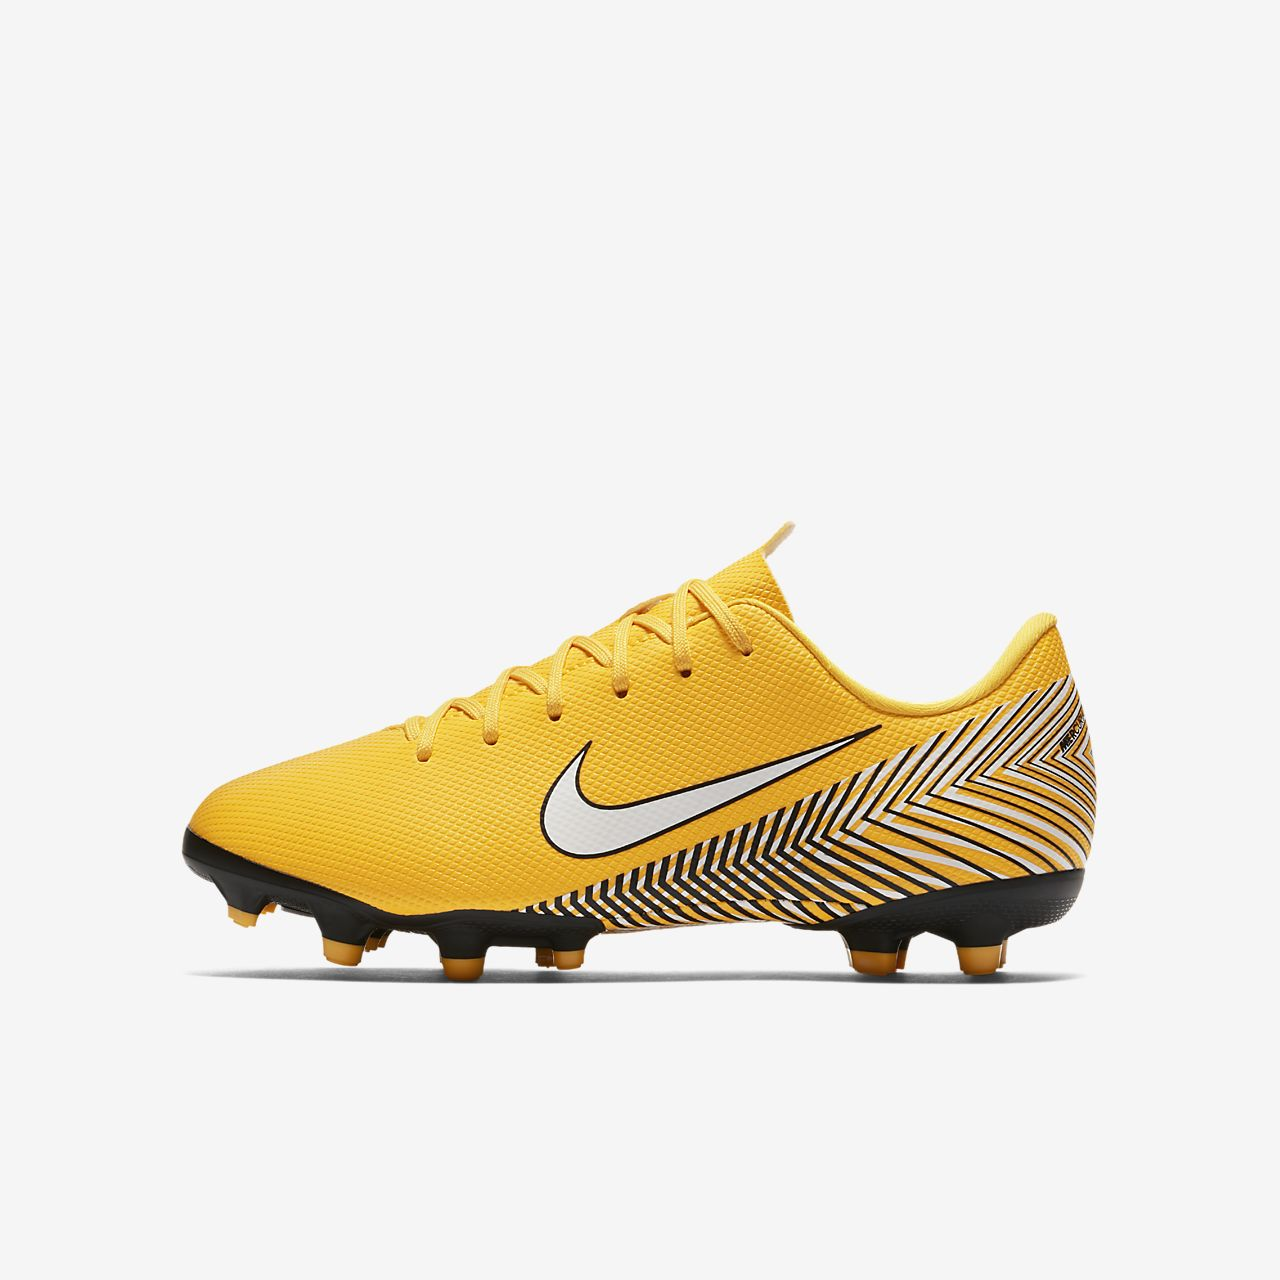 91318c9e3d ... discount code for chuteiras de futebol multiterreno nike jr. mercurial  vapor xii academy neymar jr